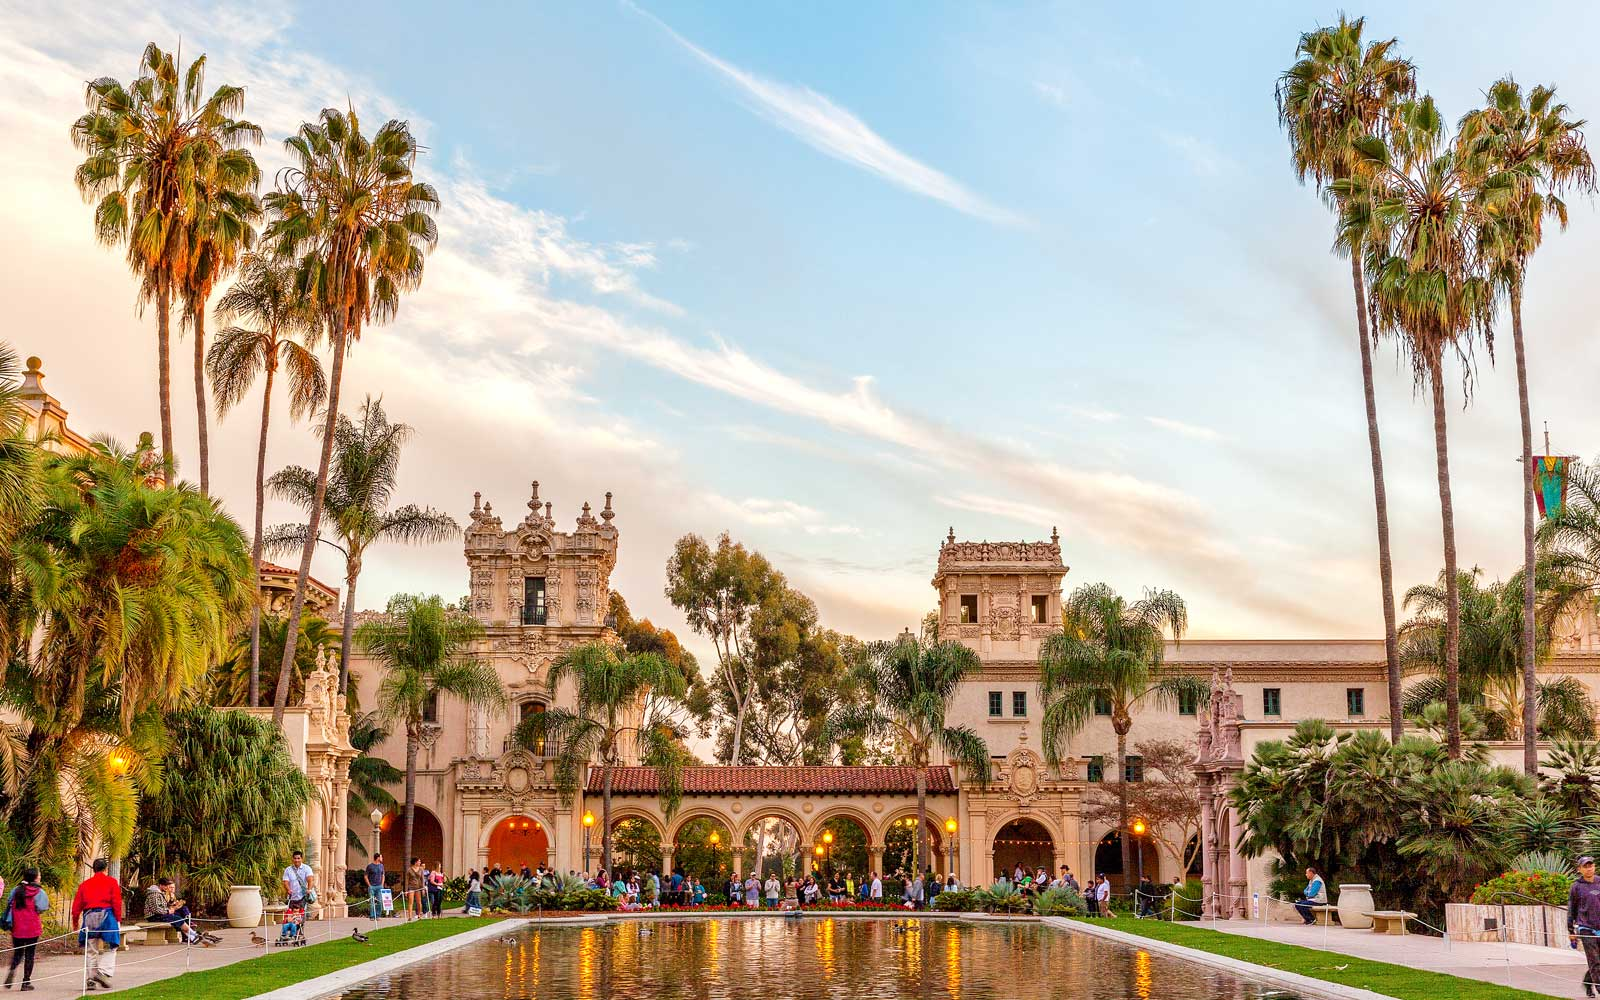 Overlooking a lily pond in Balboa Park, San Diego, California, USA